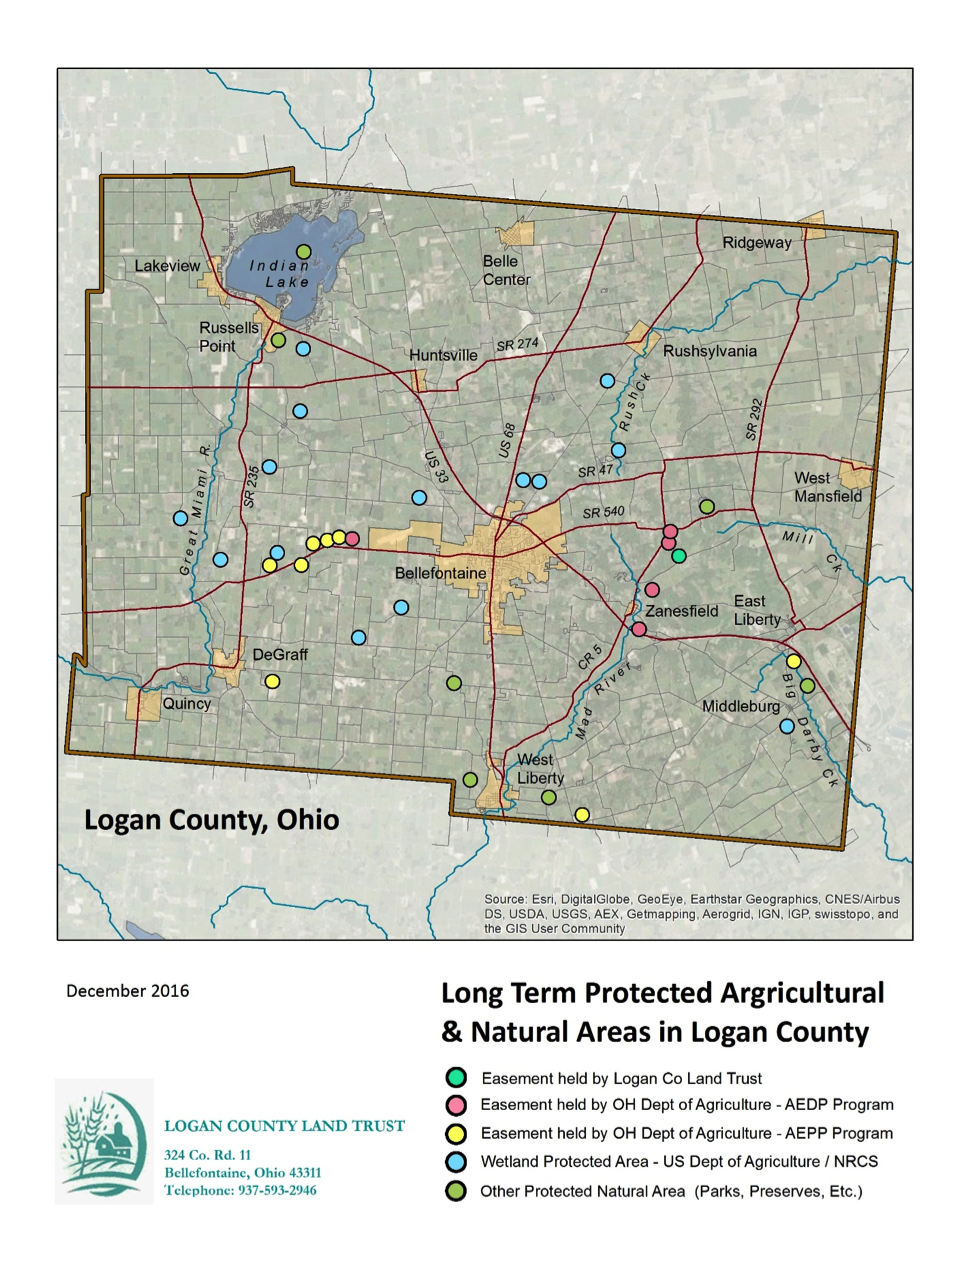 County Map LCLT.png